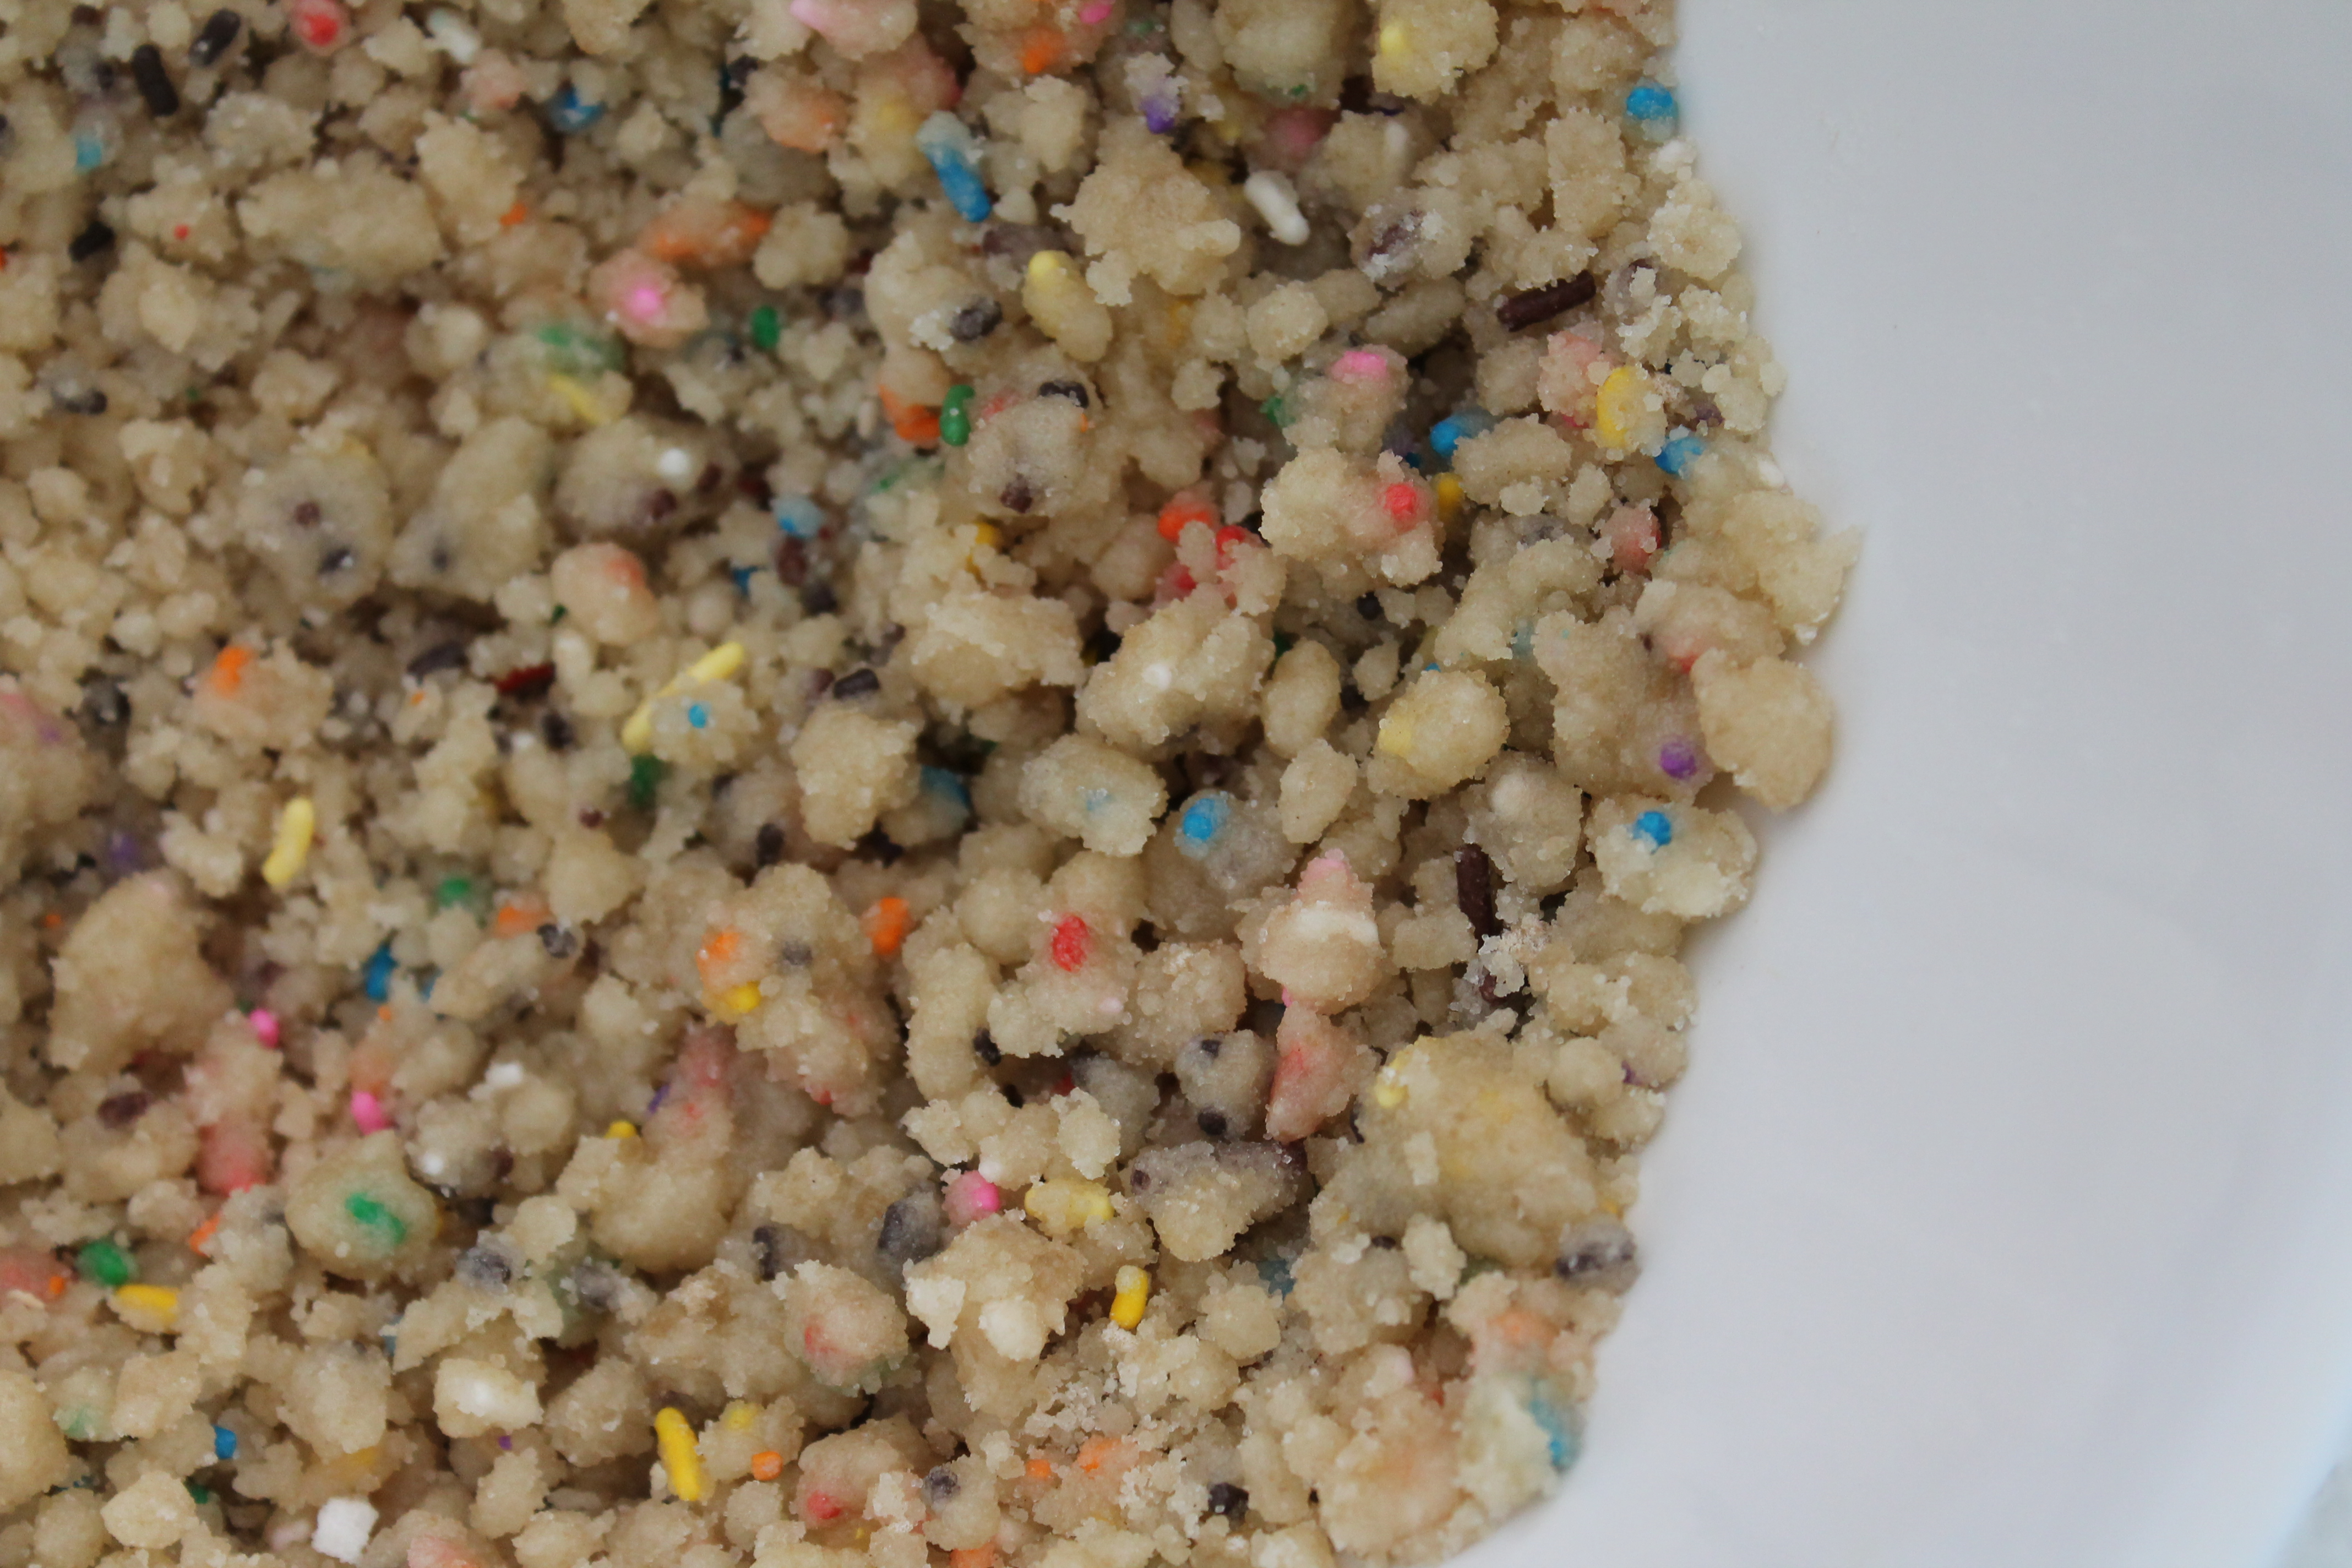 Crumbly Sprinkly Bits